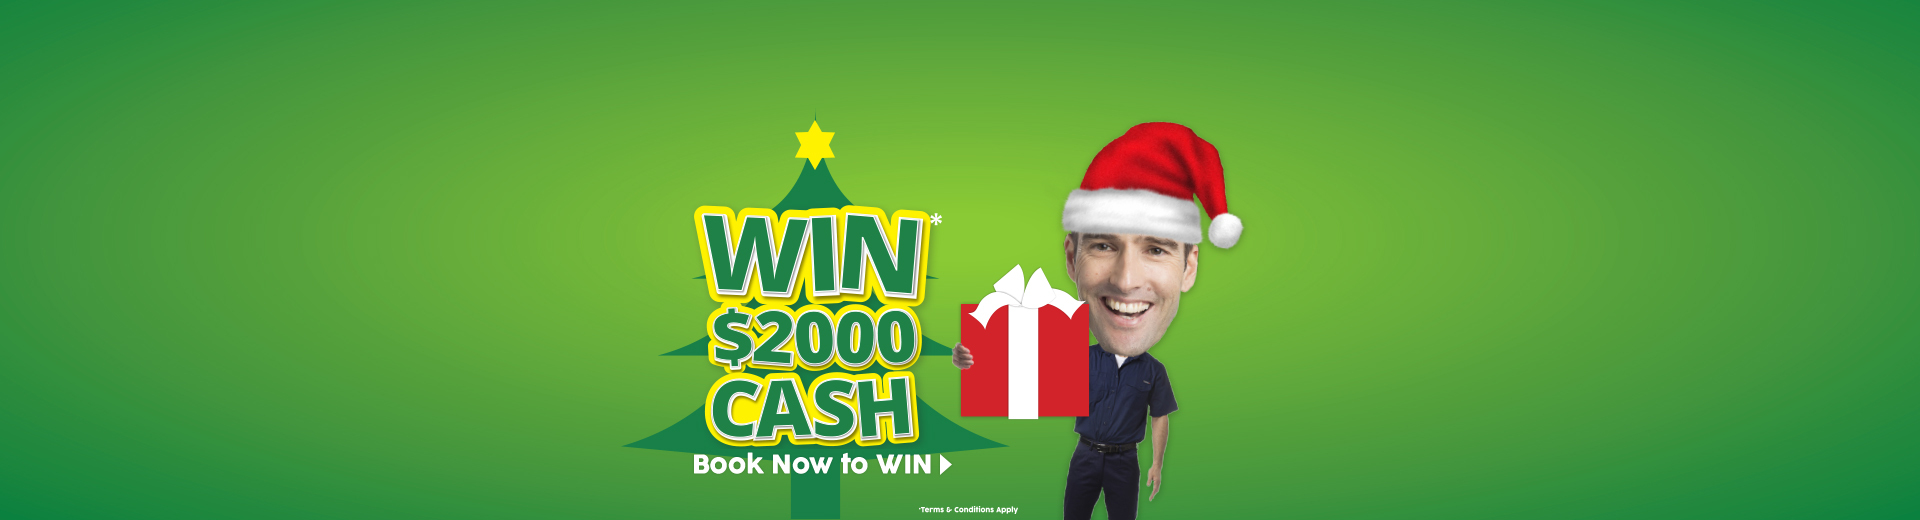 Win $2000 when you service with Giant Hyundai